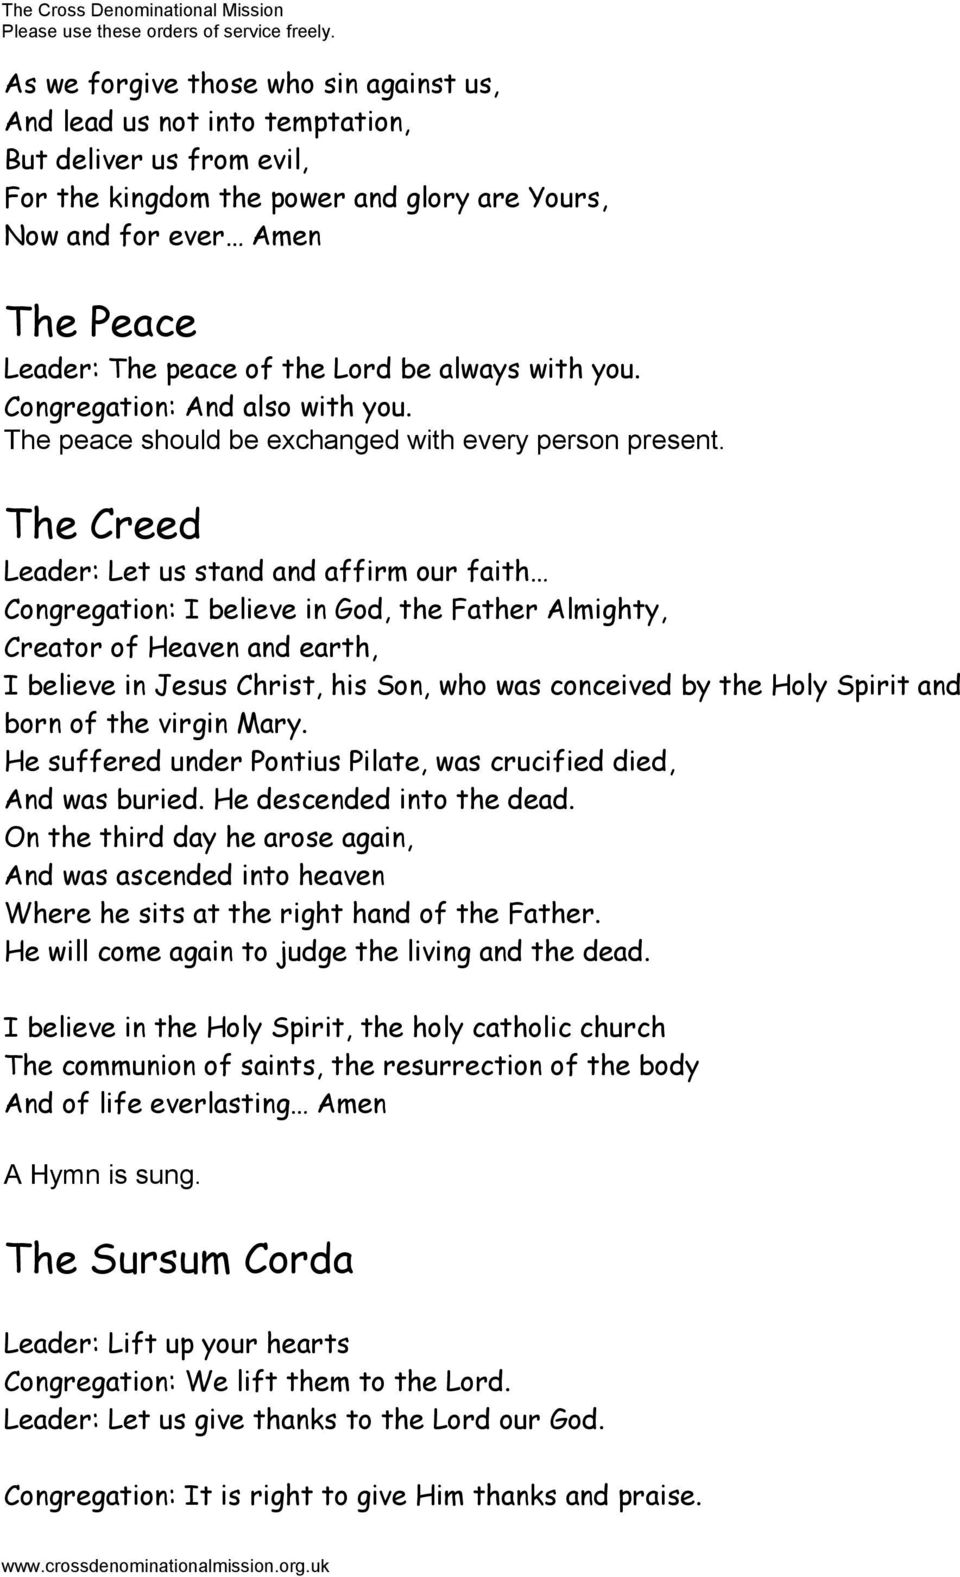 The Creed Leader: Let us stand and affirm our faith Congregation: I believe in God, the Father Almighty, Creator of Heaven and earth, I believe in Jesus Christ, his Son, who was conceived by the Holy